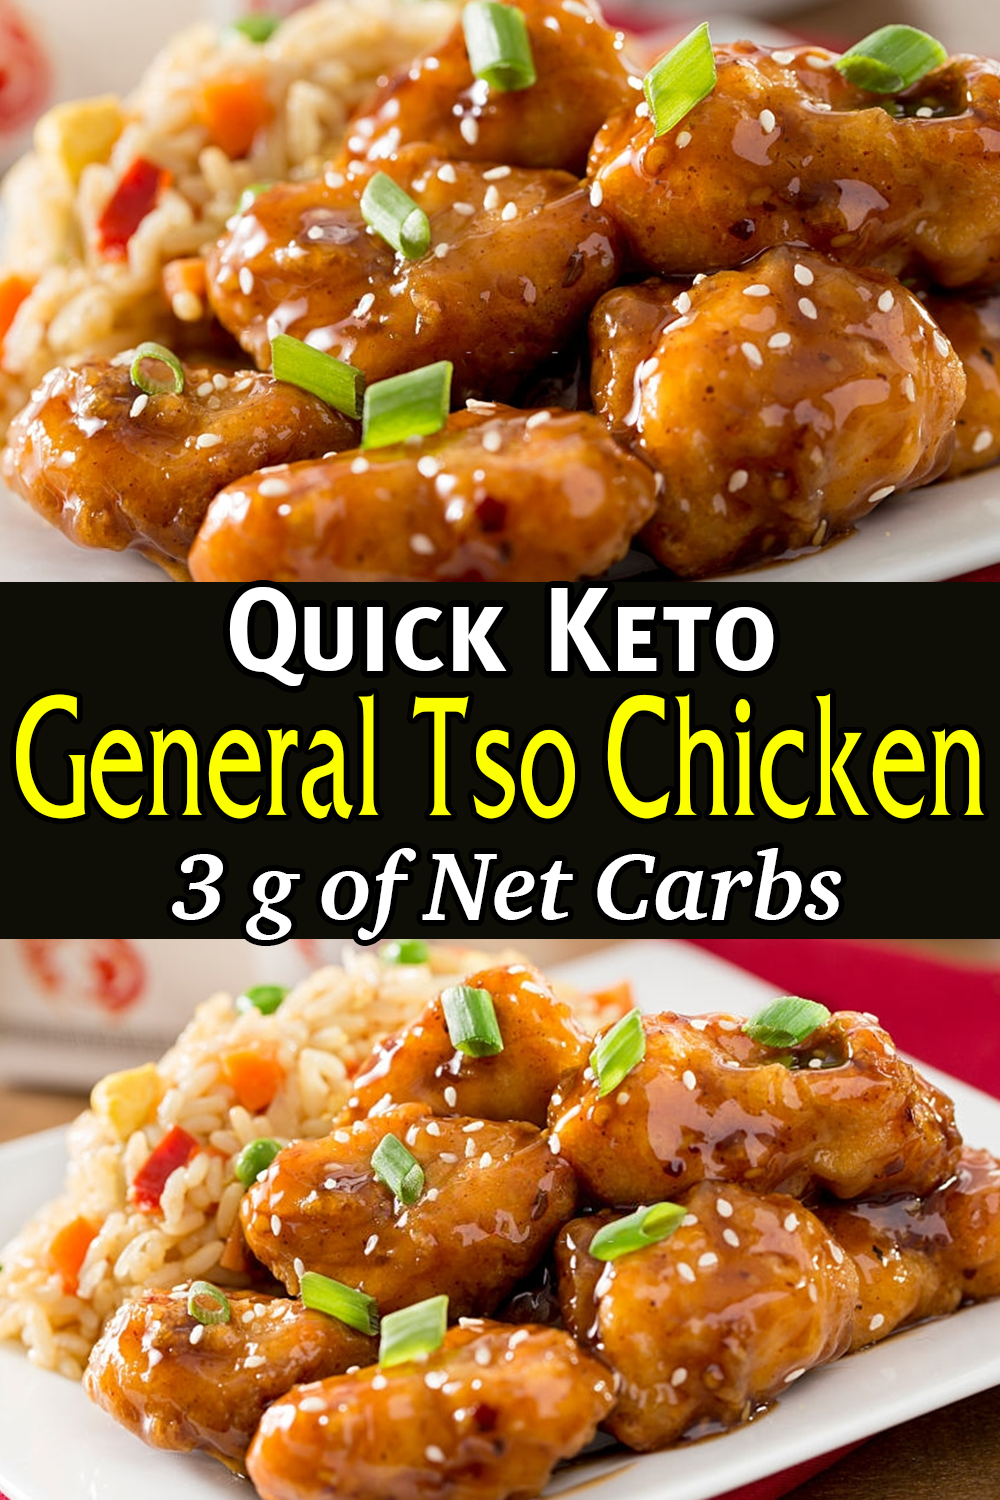 Photo of Low Carb General Tso Chicken